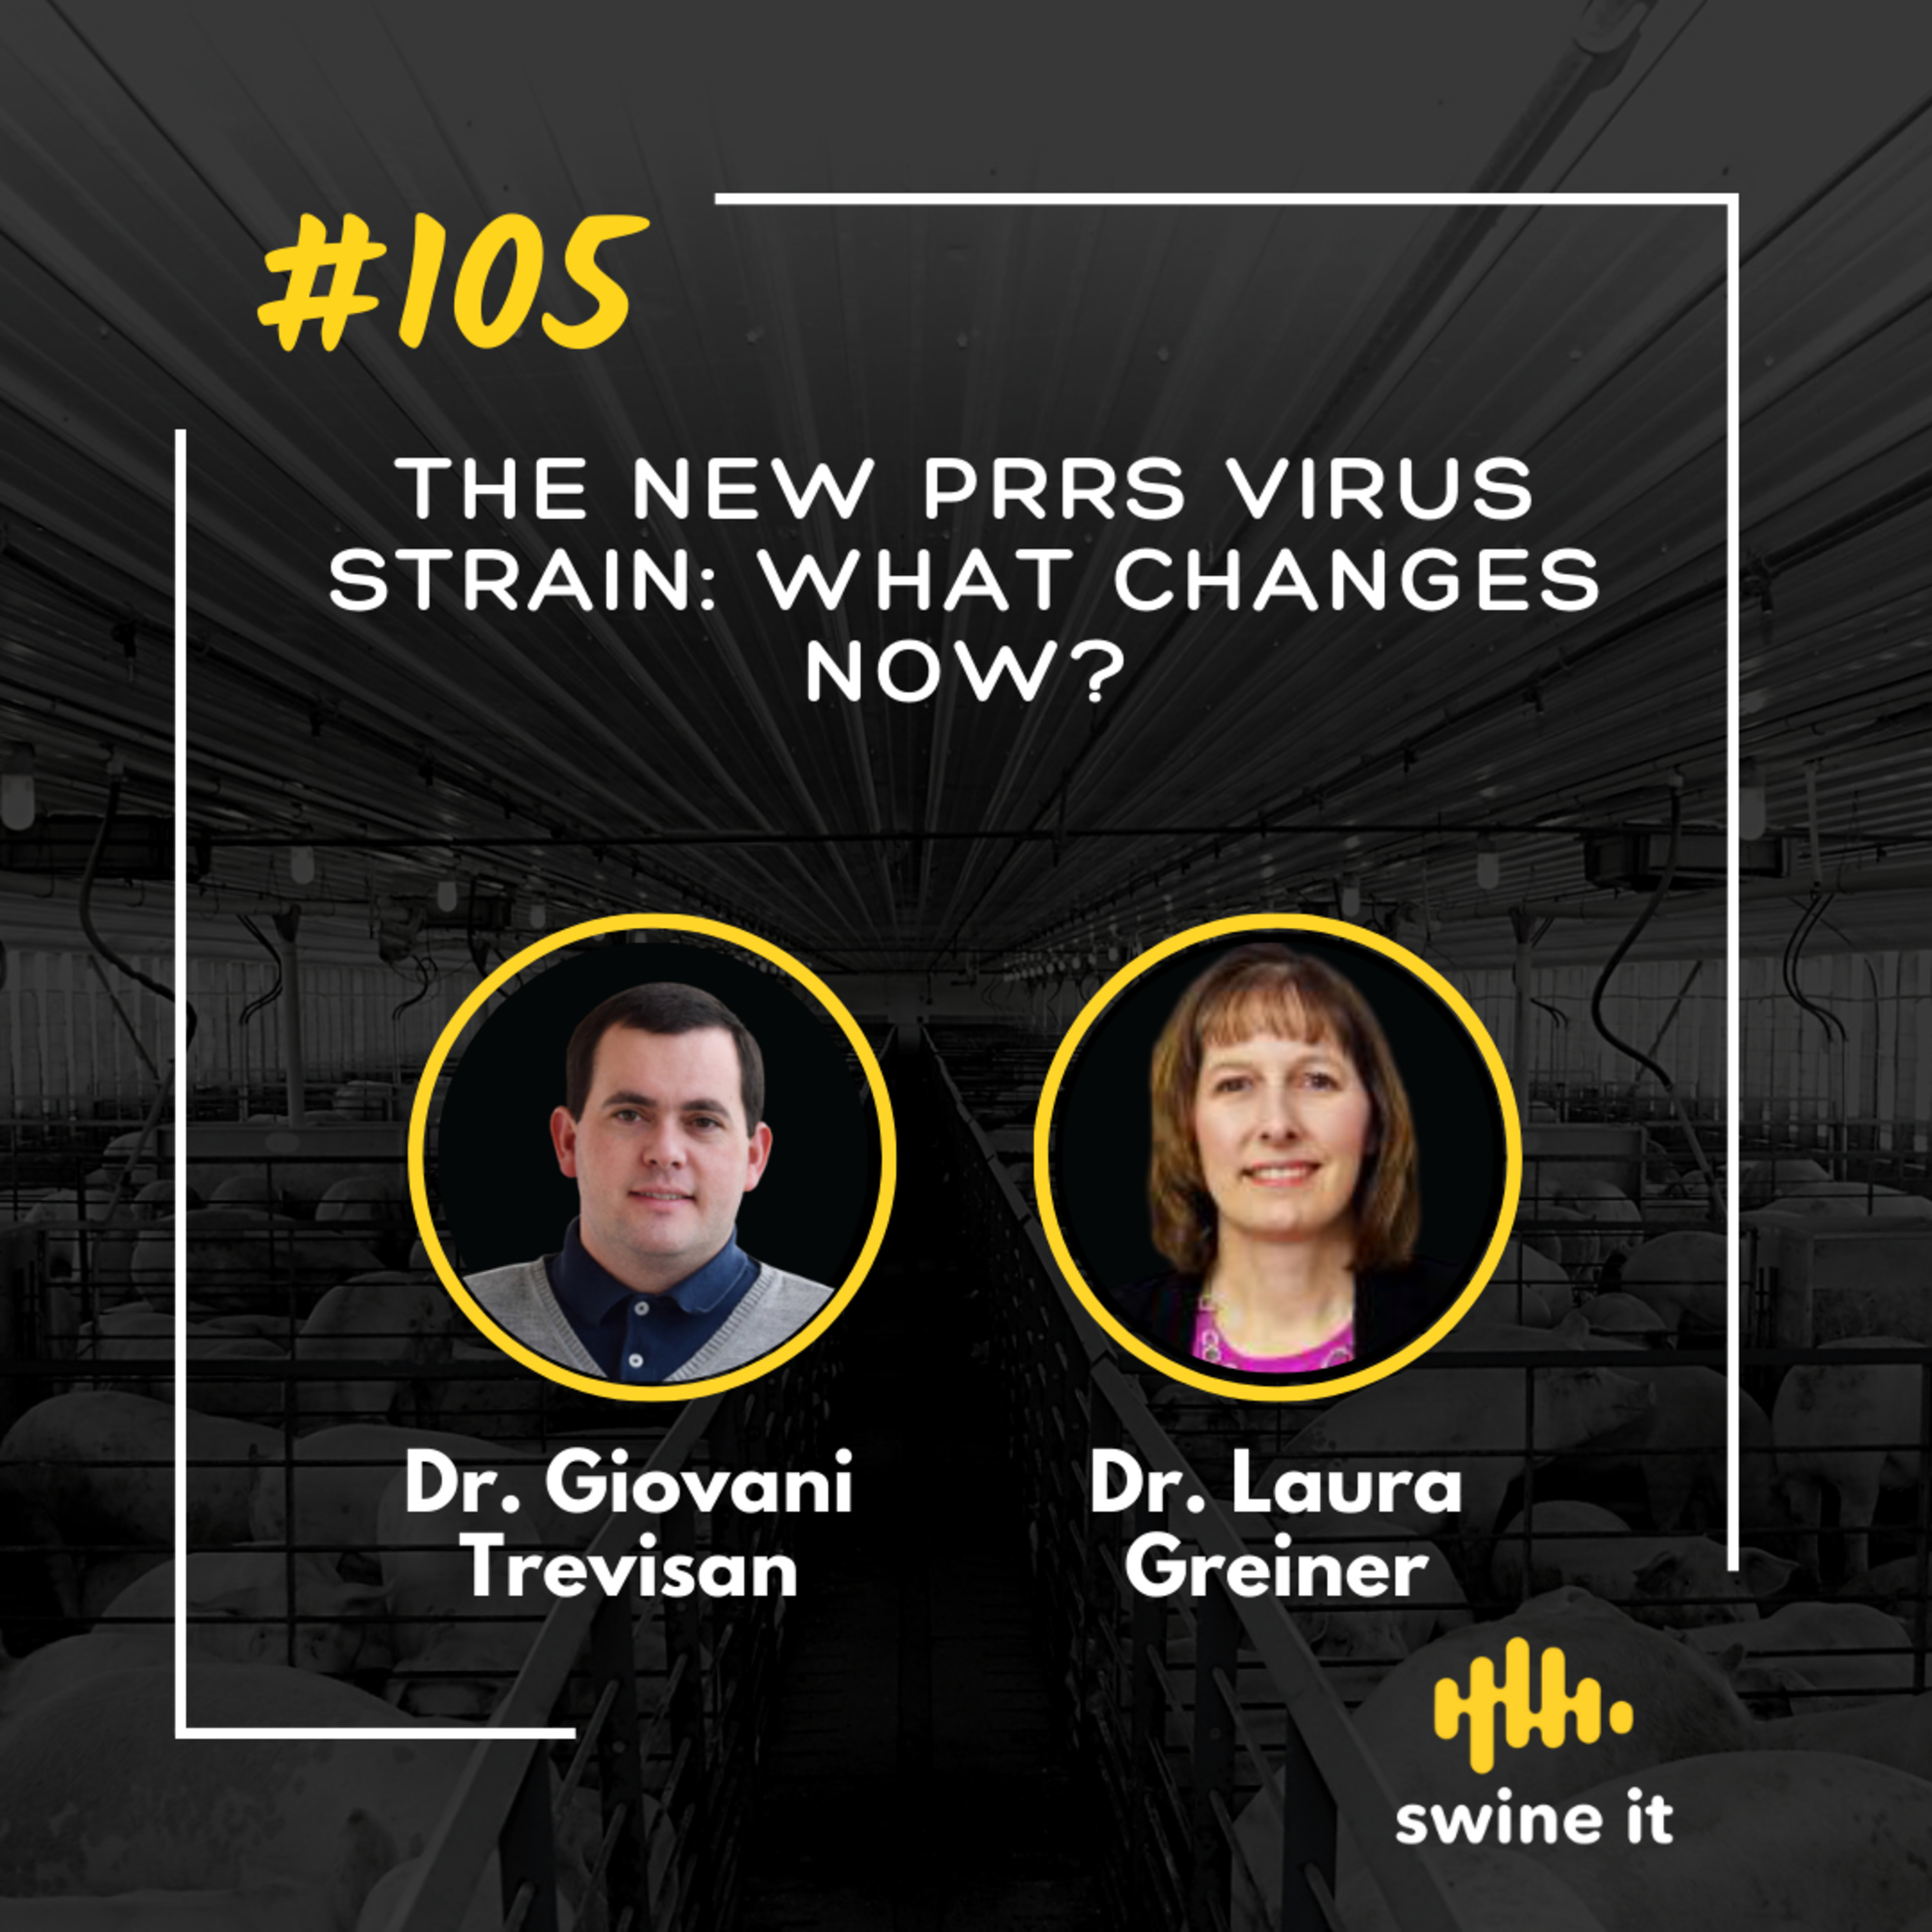 The new PRRS virus strain: what changes now? - Dr. Giovani Trevisan